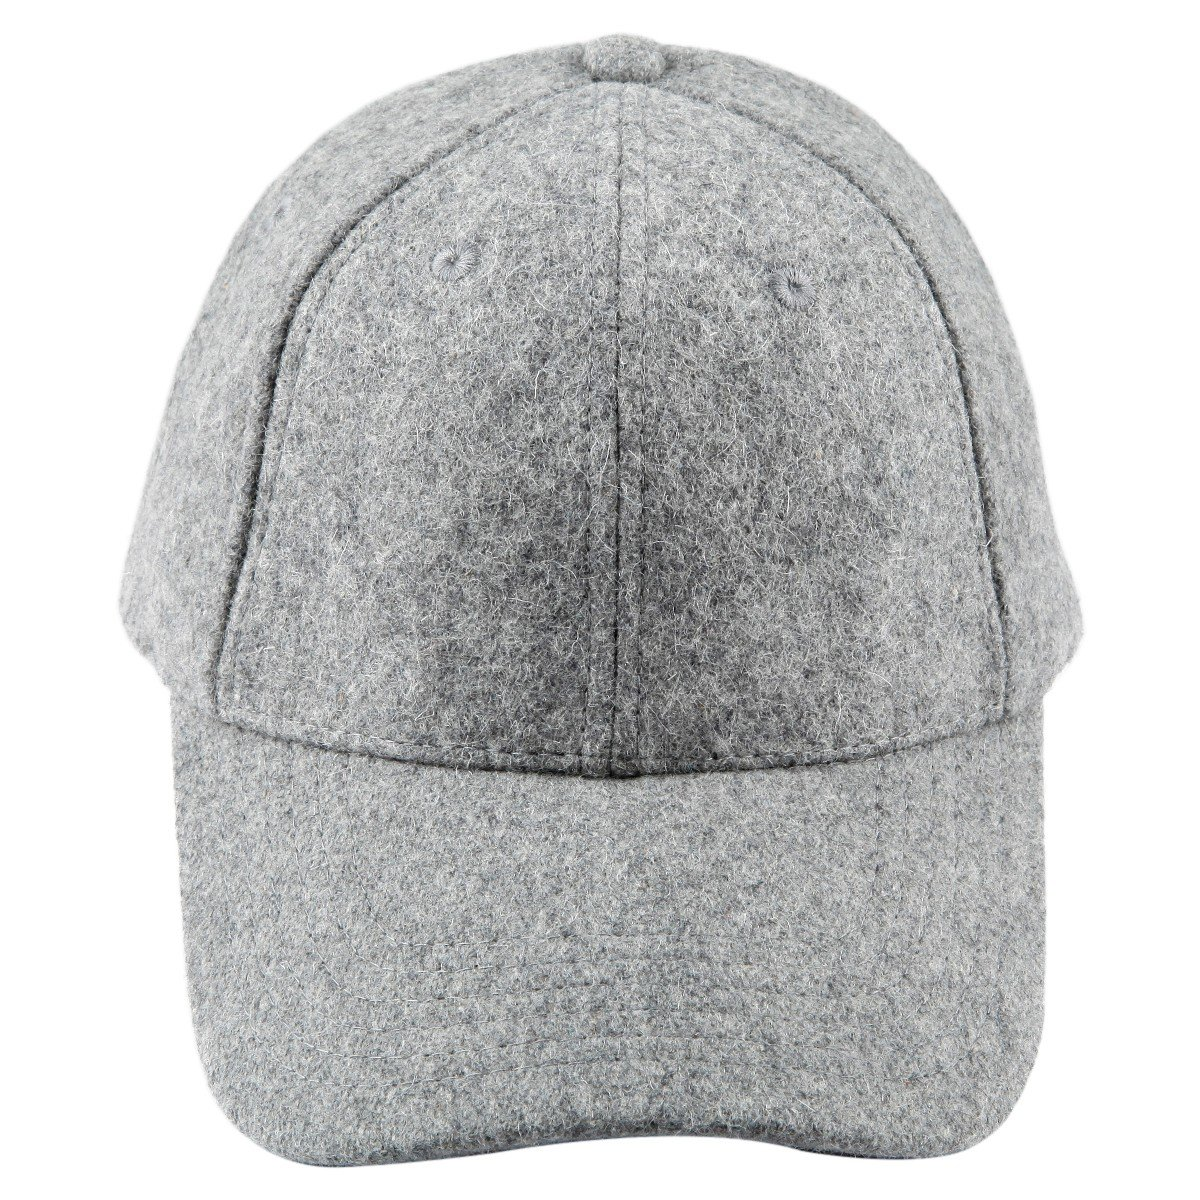 28616ec1 Samtree Unisex Woolen Baseball Cap, Winter Wide Brim Warm Snapback Hat  (01-Dark Grey(Woolen)) at Amazon Women's Clothing store: